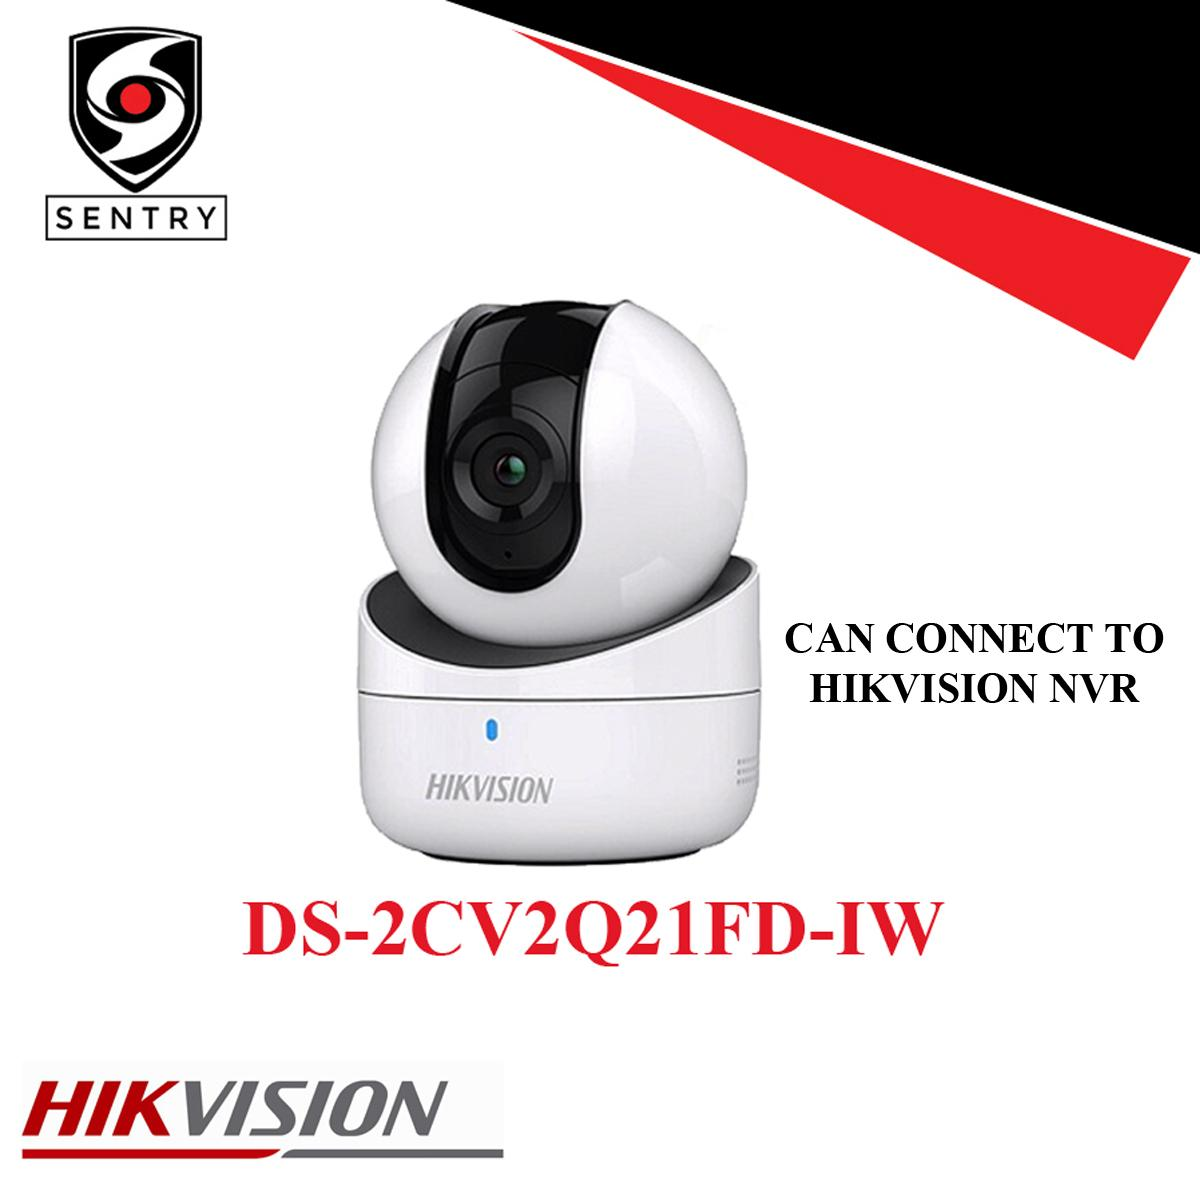 Hikvision Philippines: Hikvision price list - Hikvision CCTV, IP